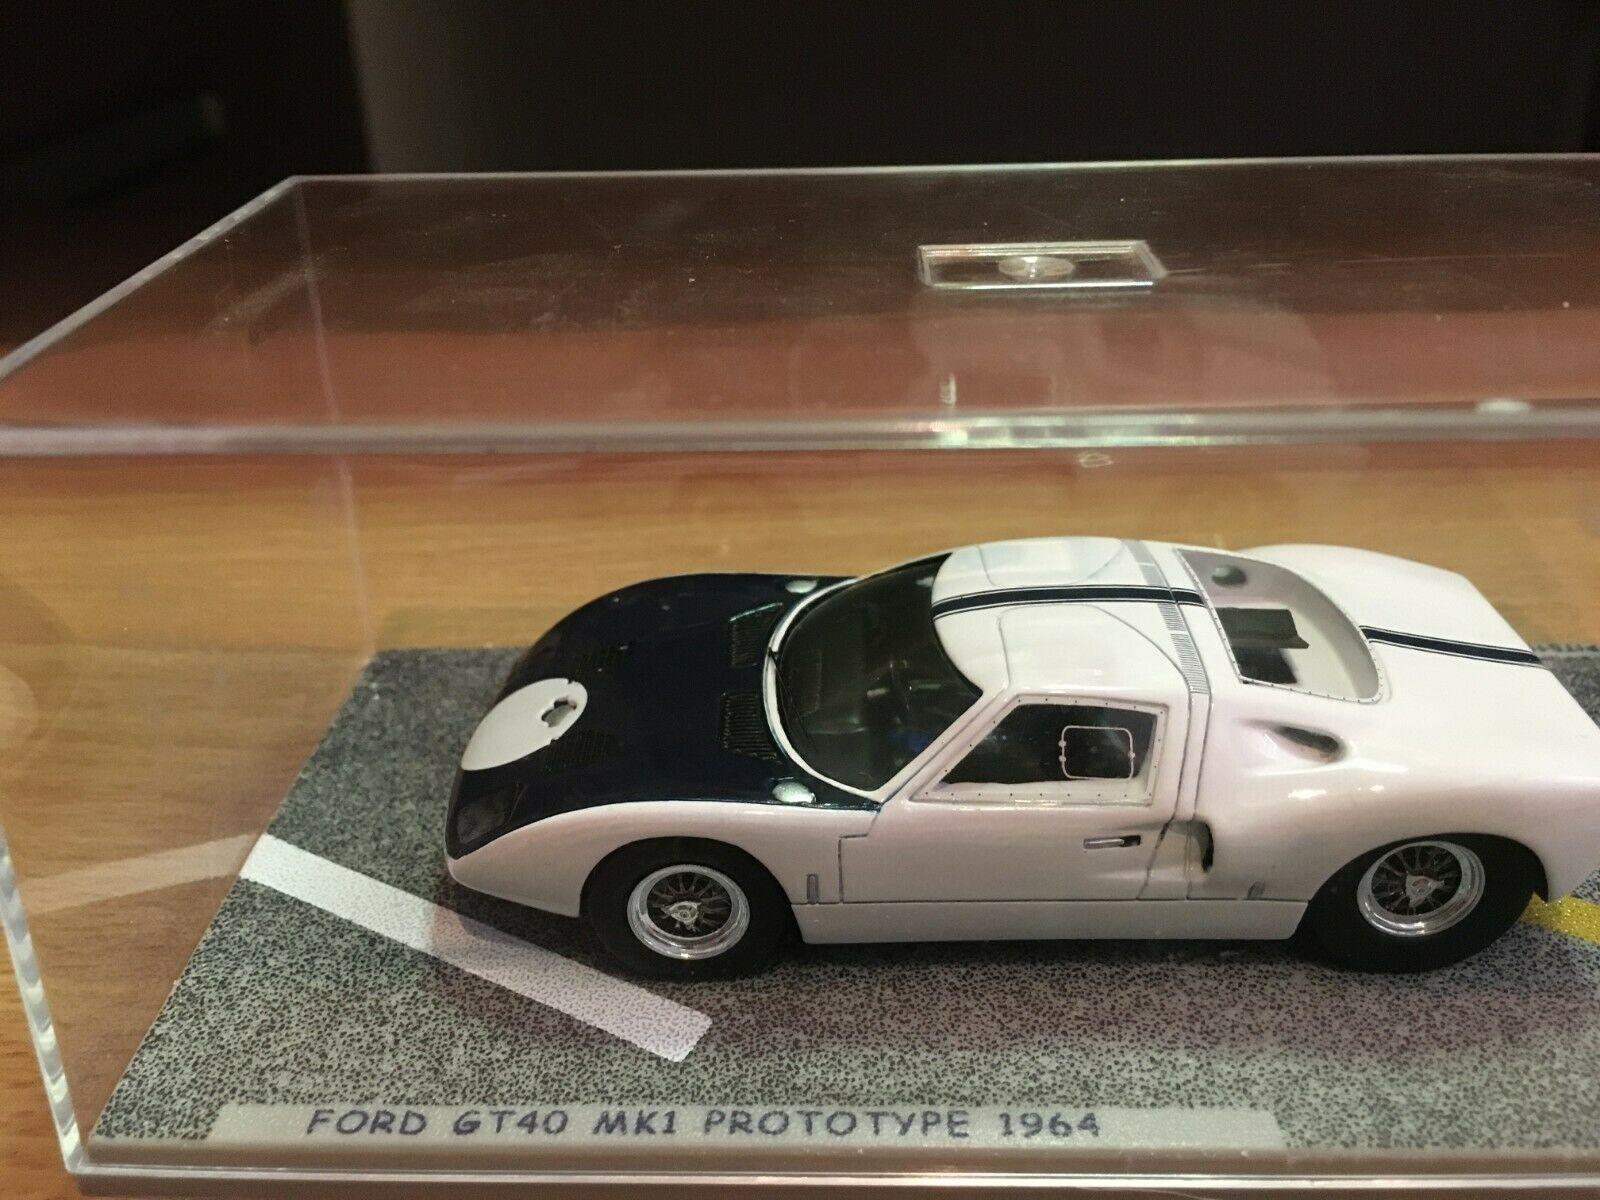 FORD GT 40 PROTOTYPE 1964